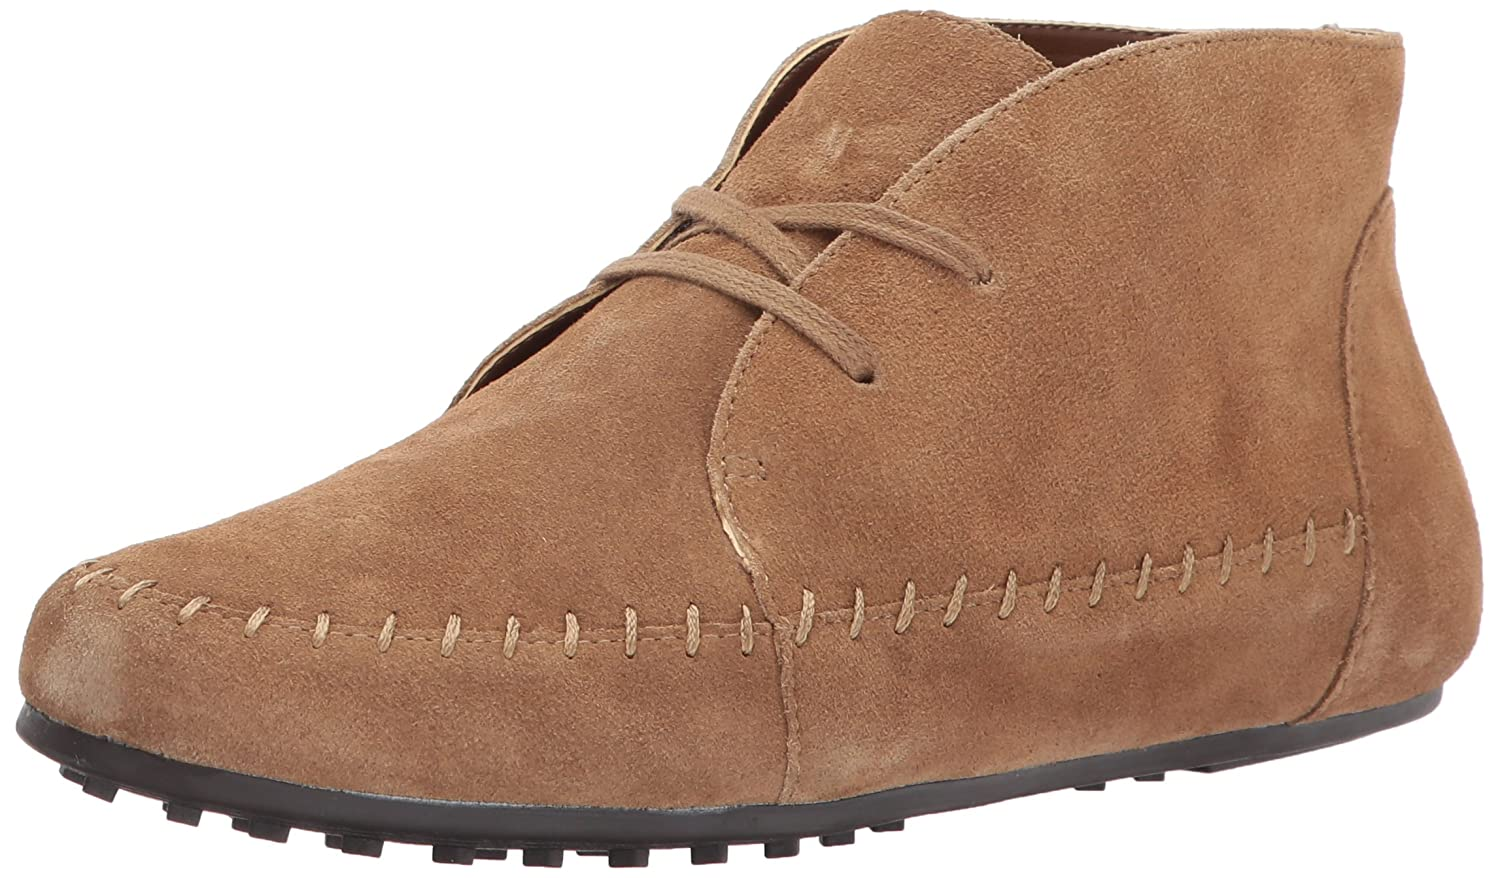 Aerosoles Women's Driving Range Ankle Boot B073P3KFKW 12 M US|Tan Suede